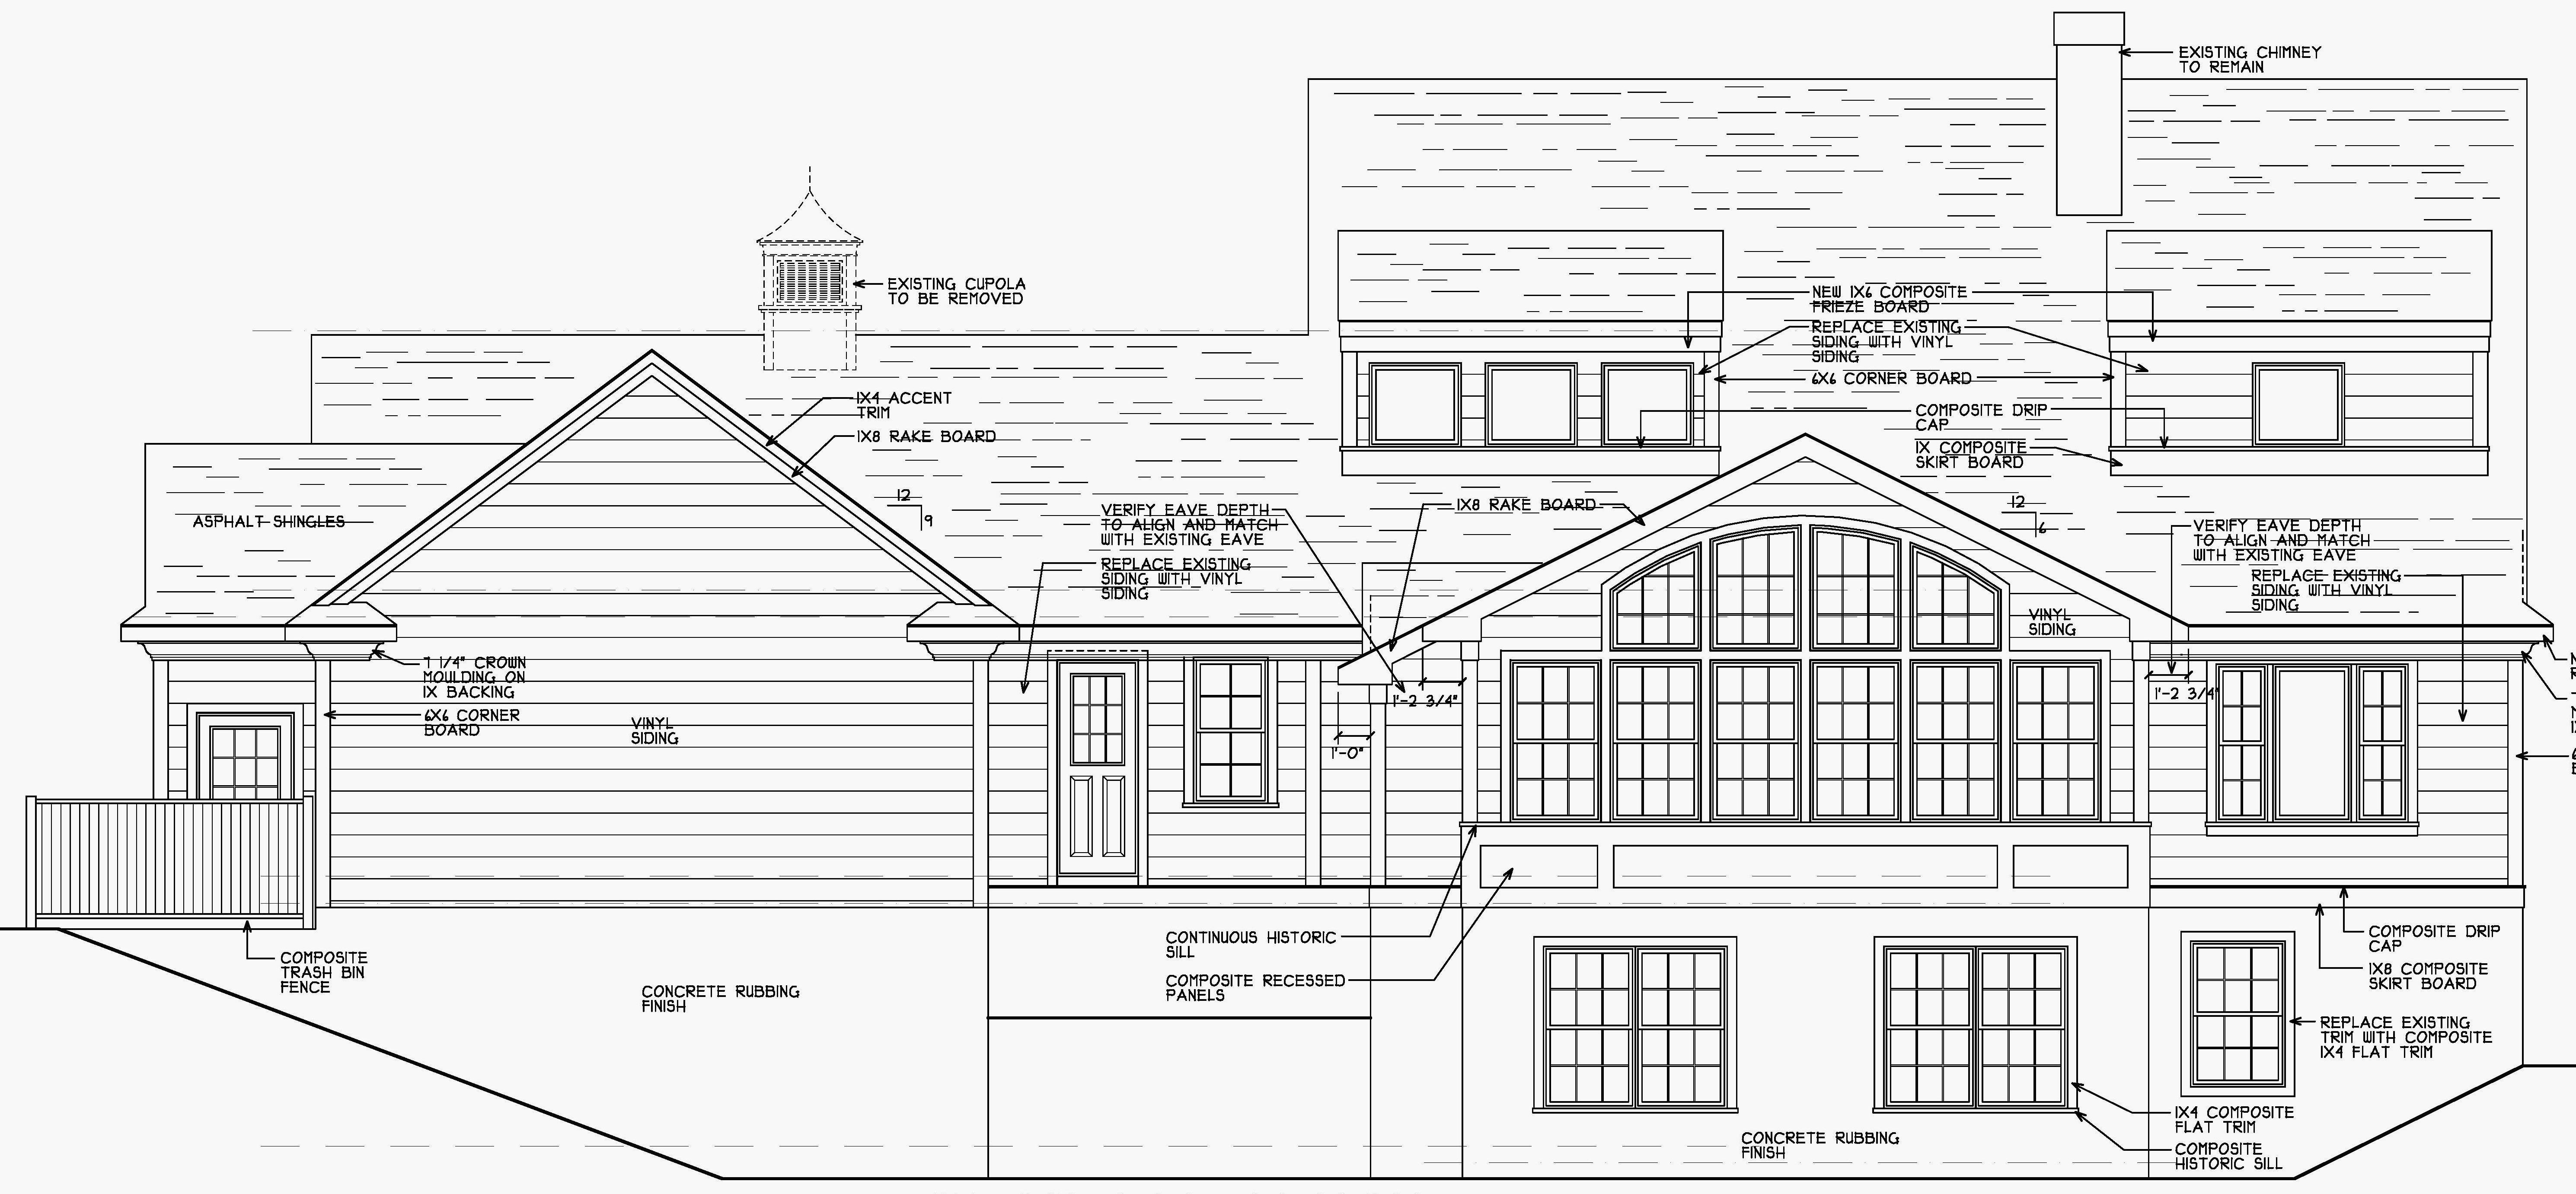 chester-county-additions-remodel-back-draw.jpeg